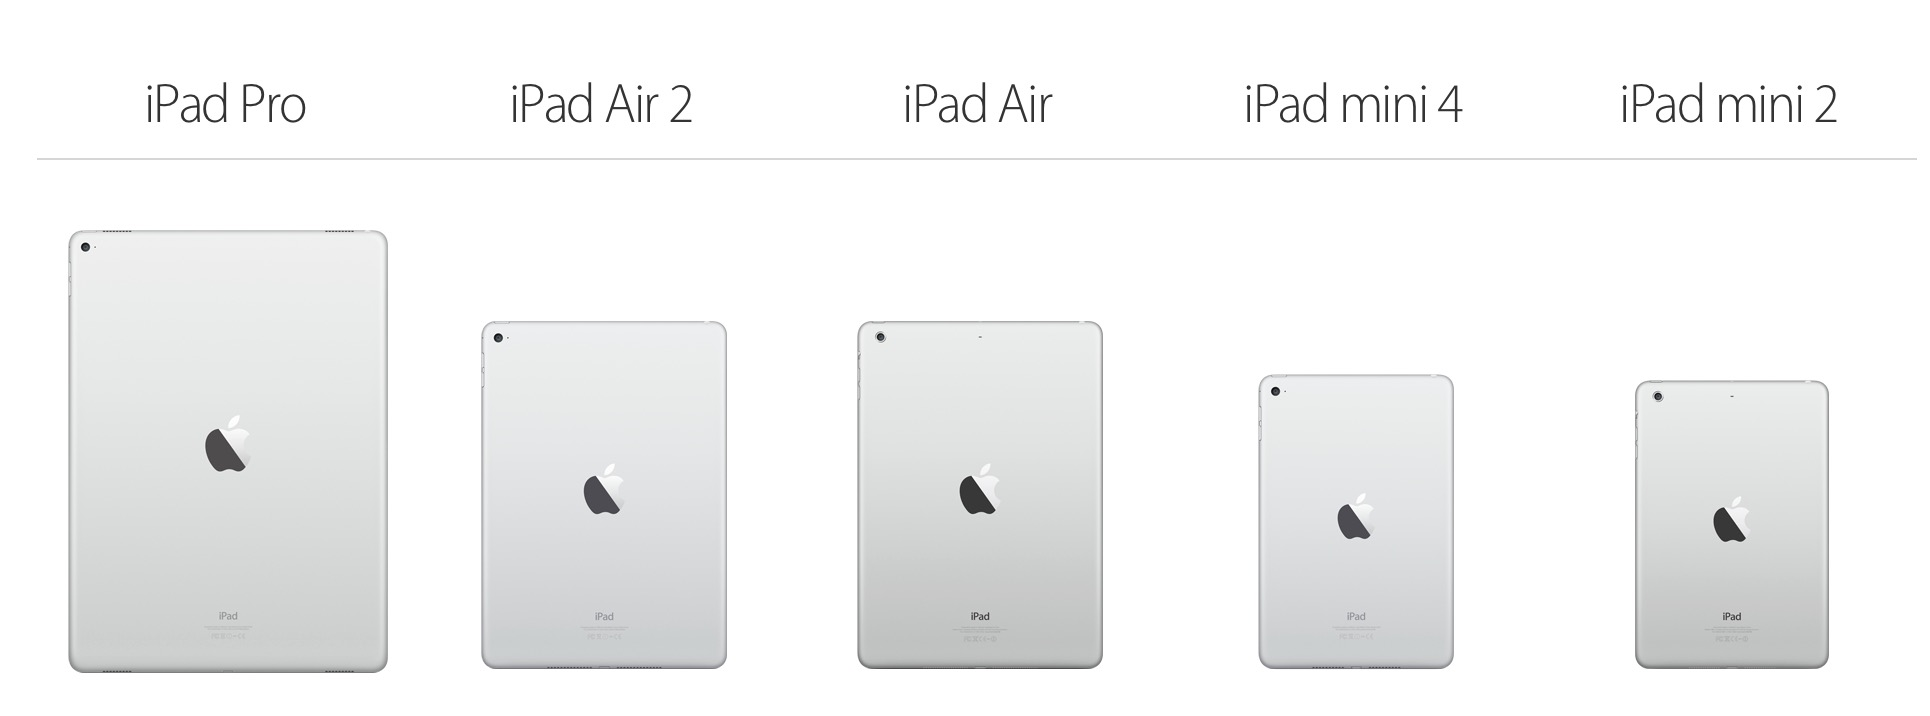 http://appadvice.com/appnn/2015/11/7-early-thoughts-on-the-ipad-pro-and-its-rollout